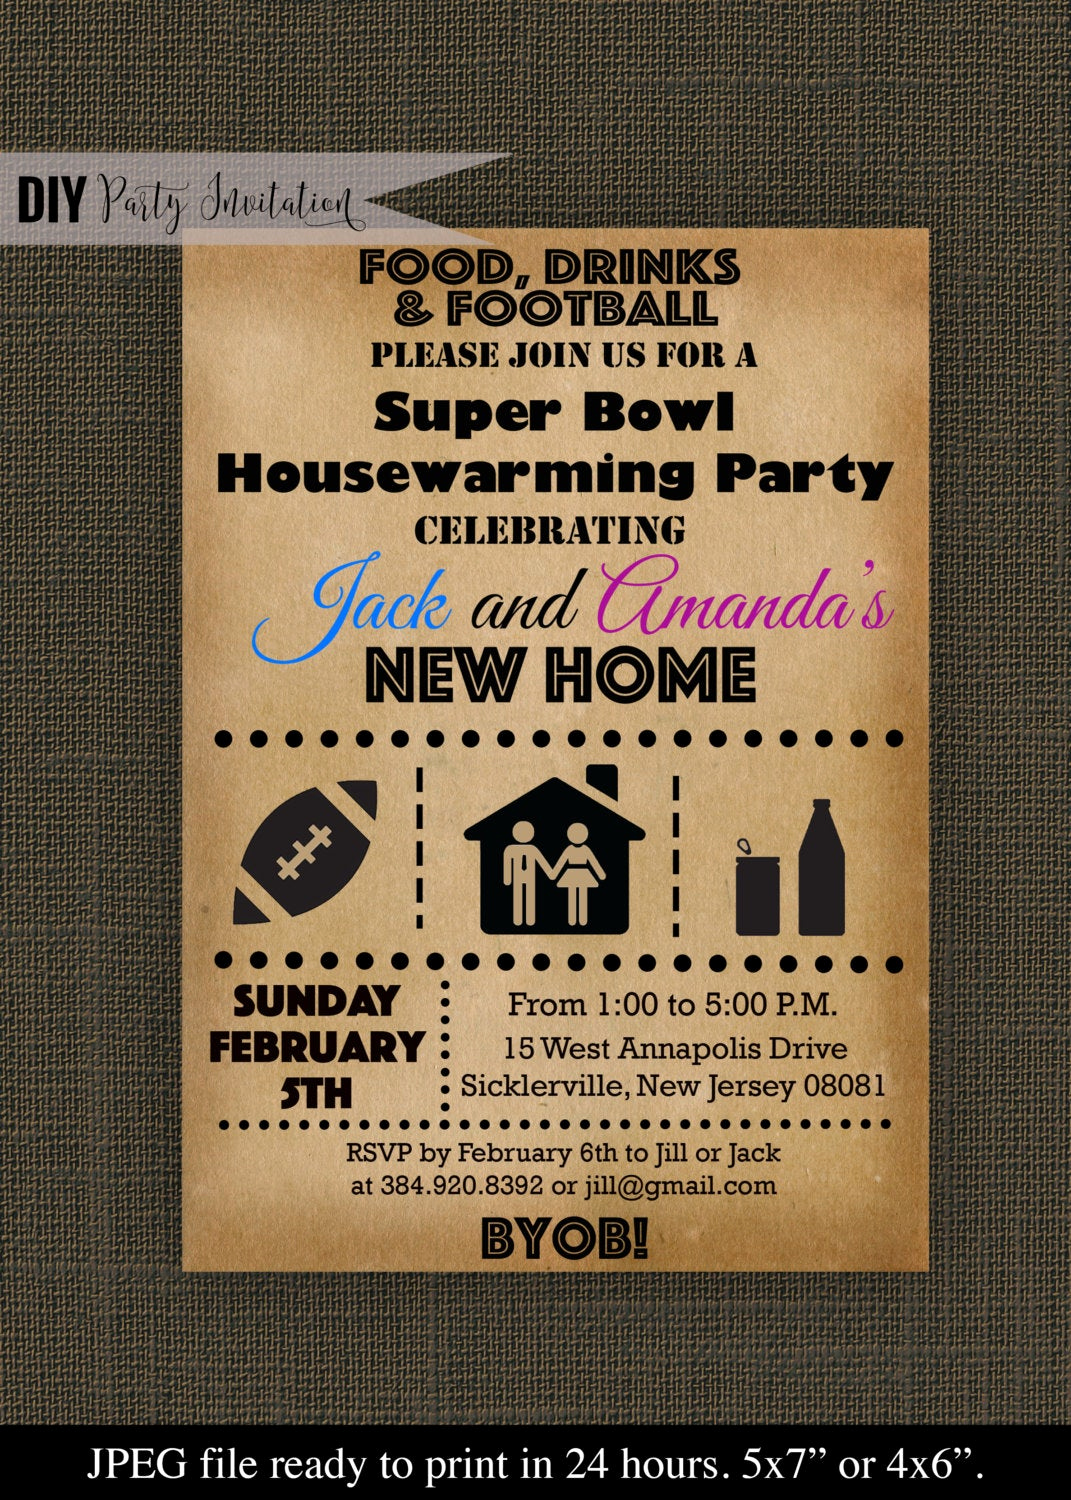 Super Bowl Invitation Ideas New Super Bowl Housewarming Party Invitation by Diypartyinvitation